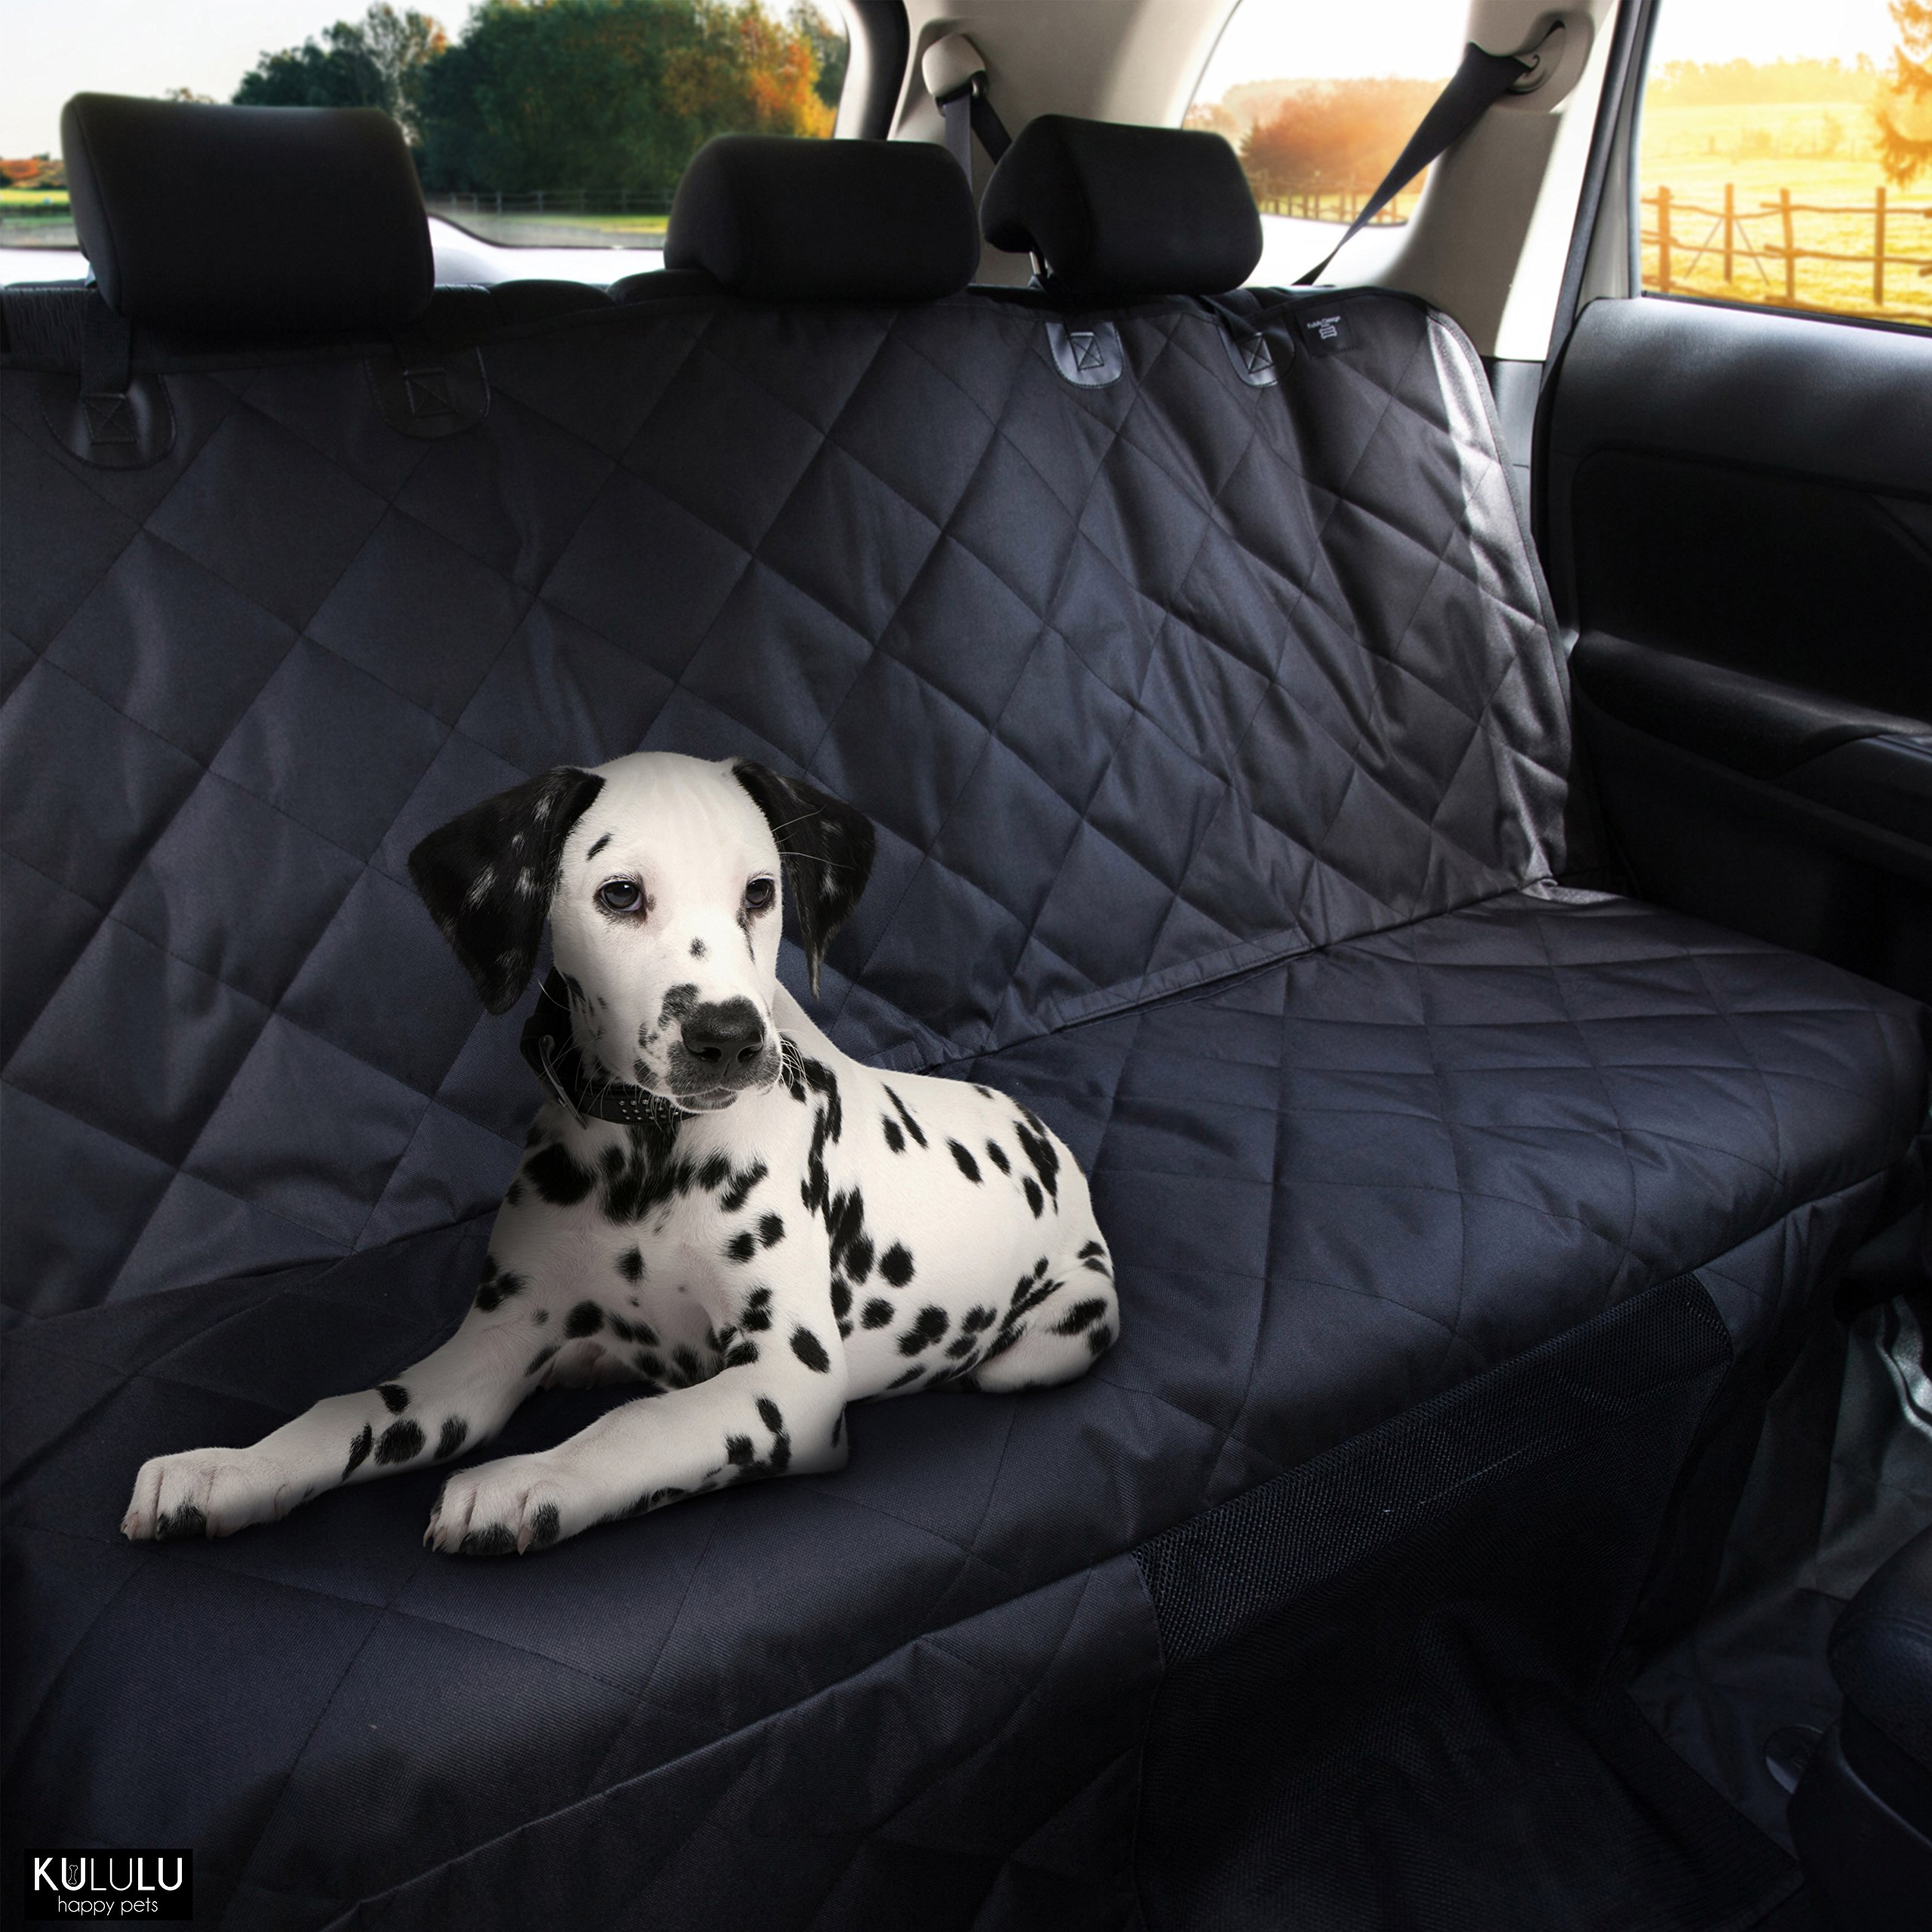 PREMIUM XL Dog Car Seat Cover Hammock Style And Cargo Liner For Cars, Trucks And Suv's. The Original Design You Can See Your Pet & Your Pet Sees You with the ClearView Window- Keeps Your Pet Calm. by Kululu (Image #7)